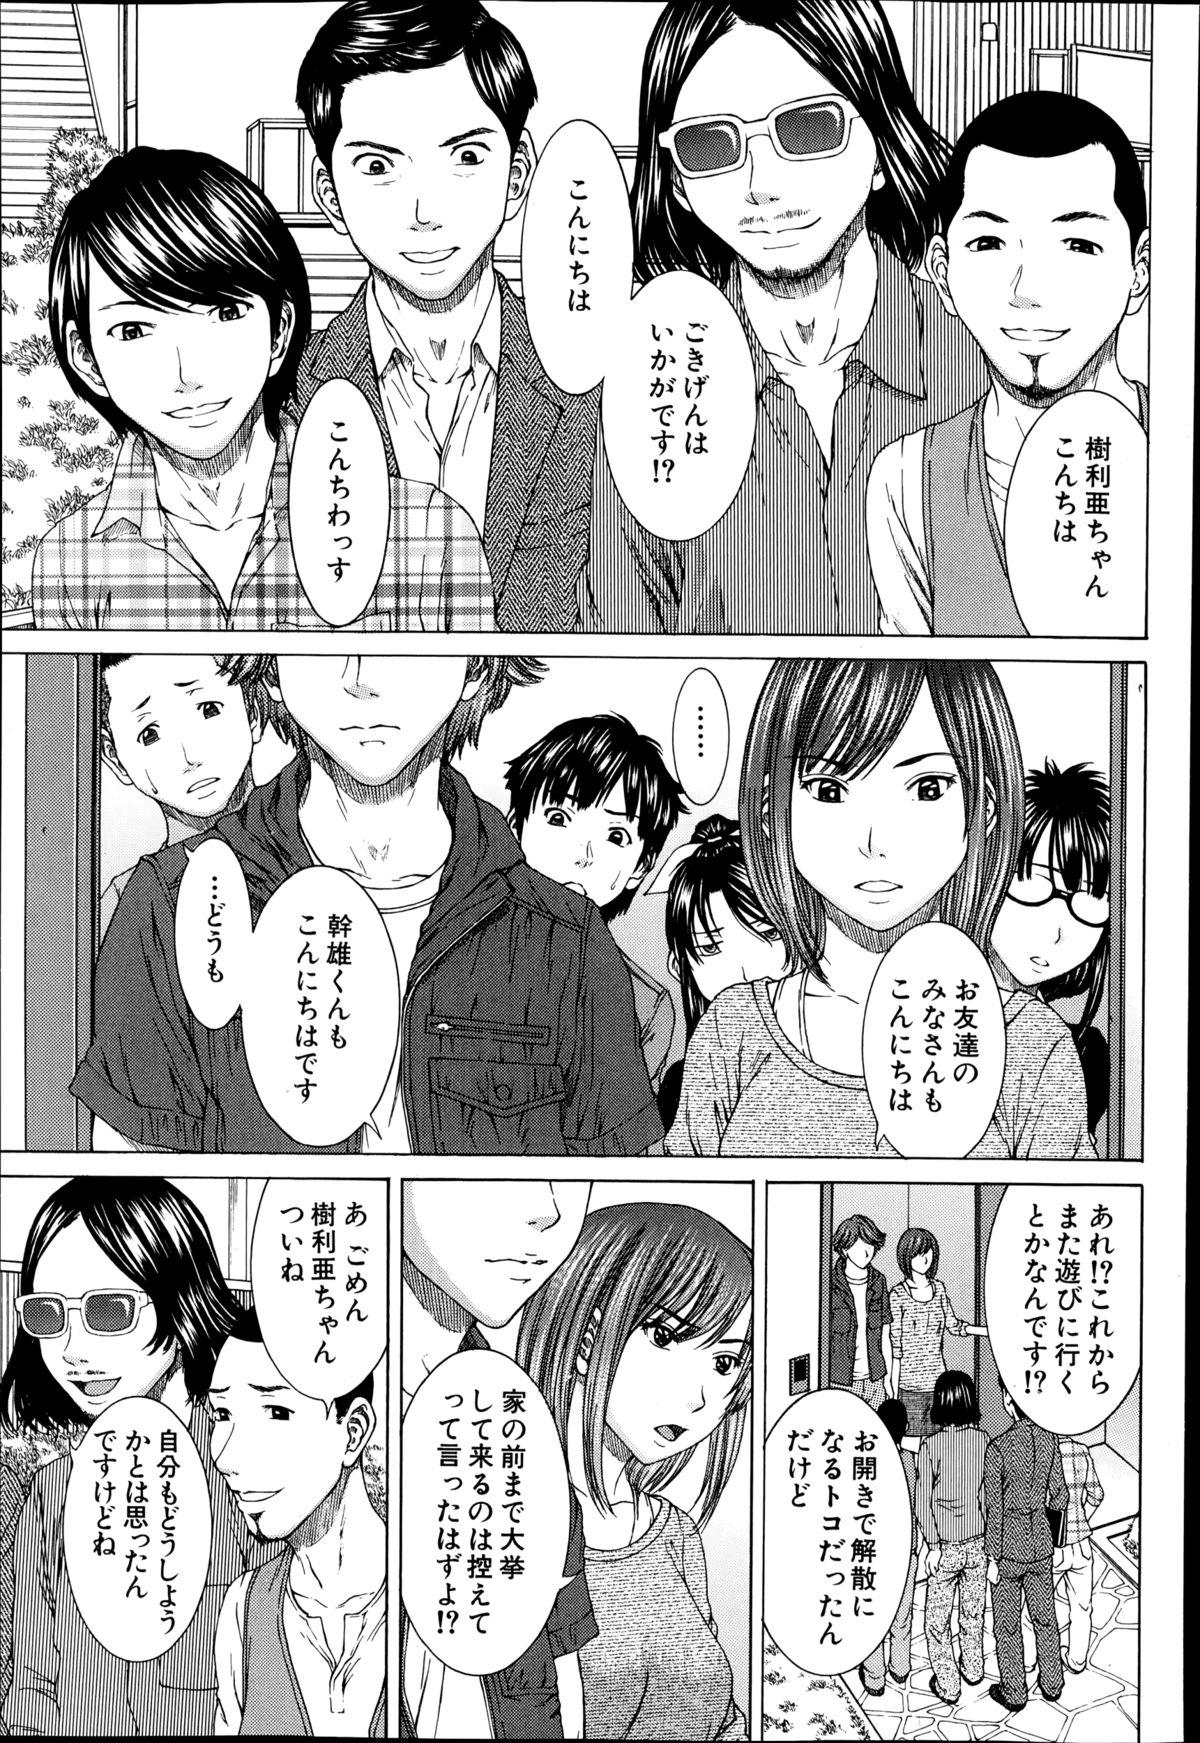 BUSTER COMIC 2014-09 256